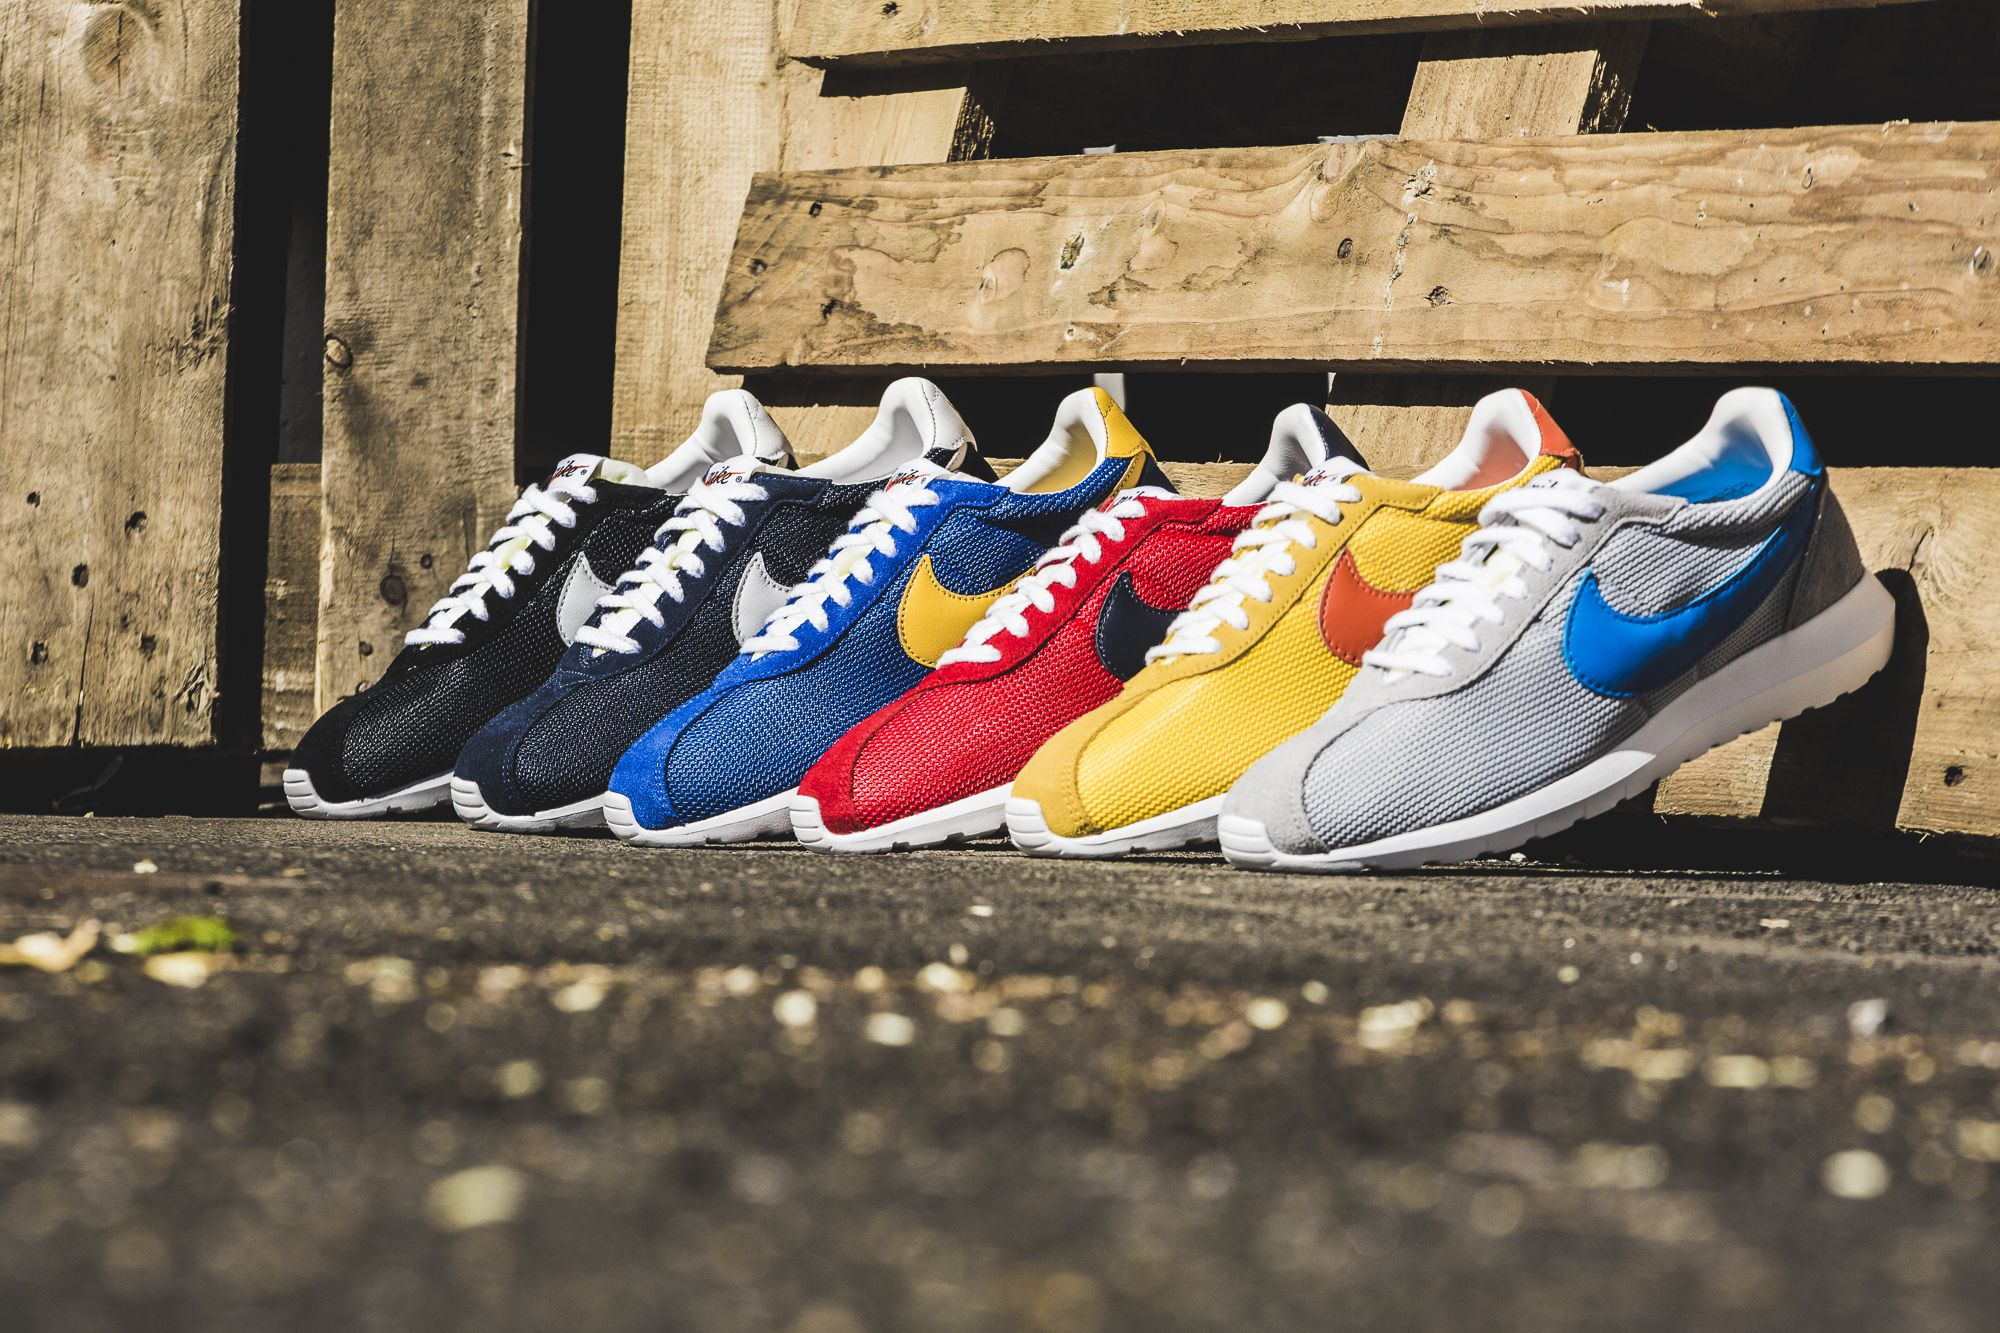 da5e368d29a7a RELEASE REMINDER    Six beautiful colorways on the Nike Roshe LD ...